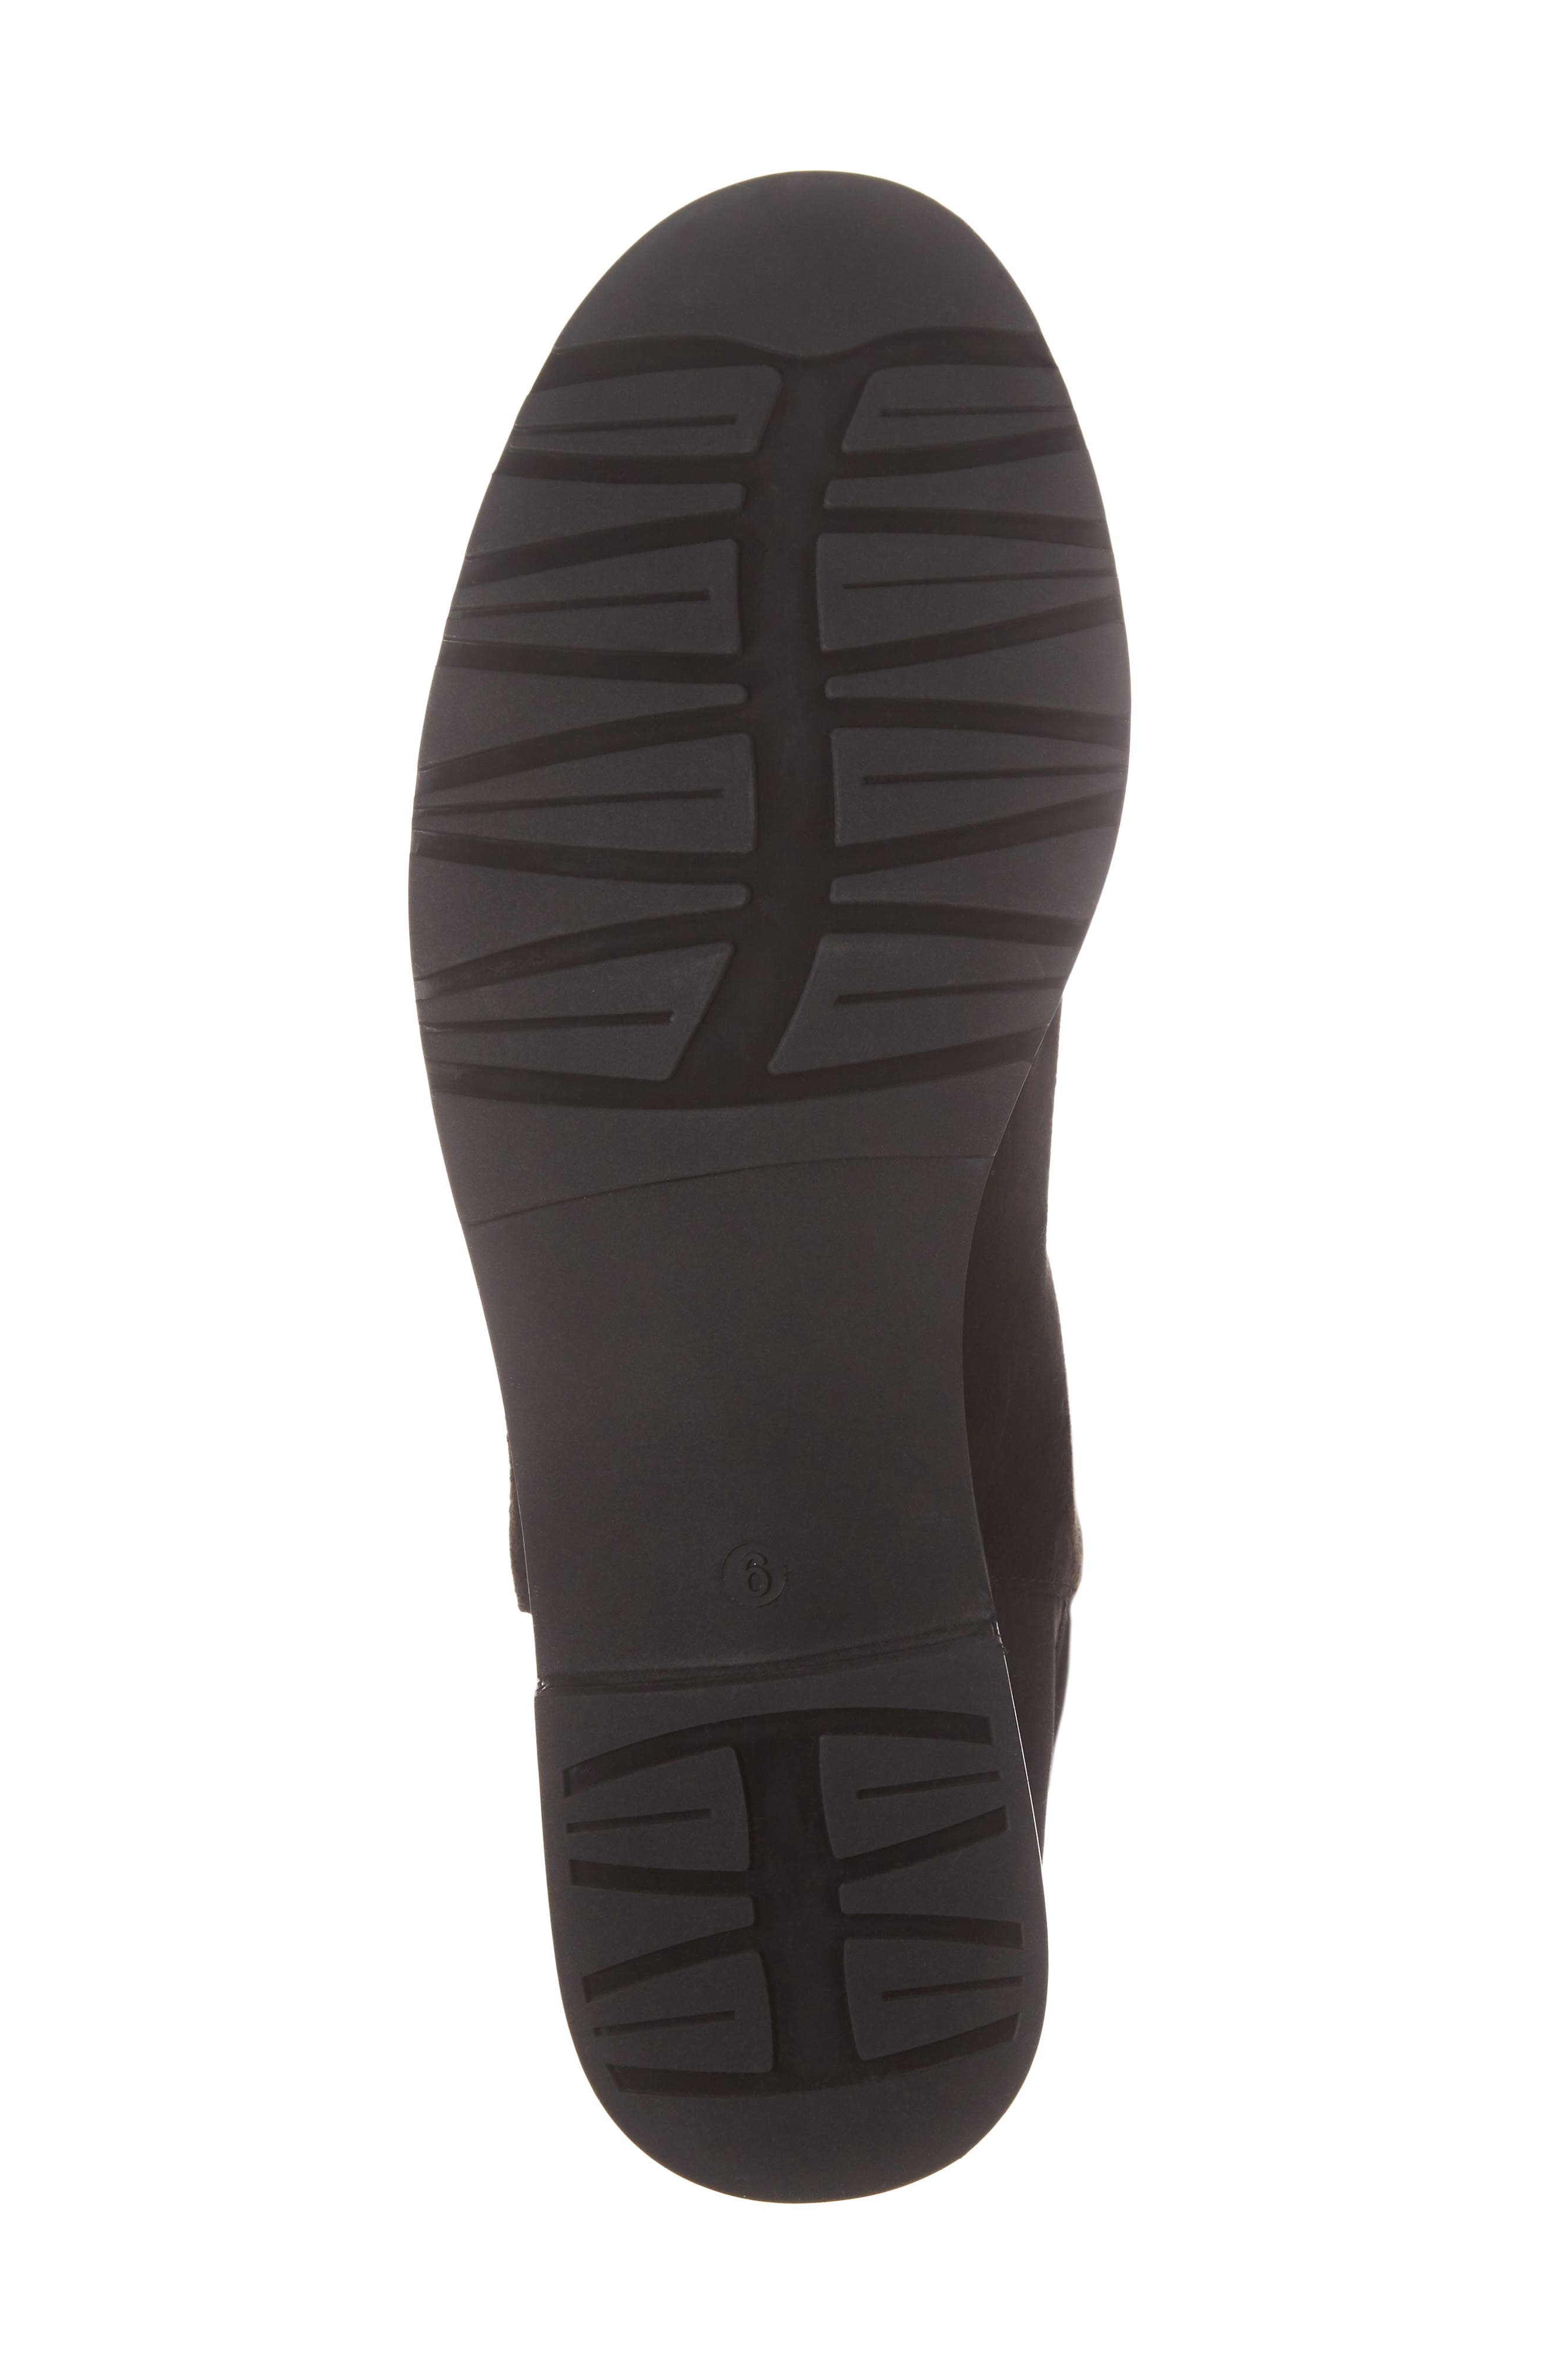 Panache Tall Boot,                             Alternate thumbnail 6, color,                             Black Suede